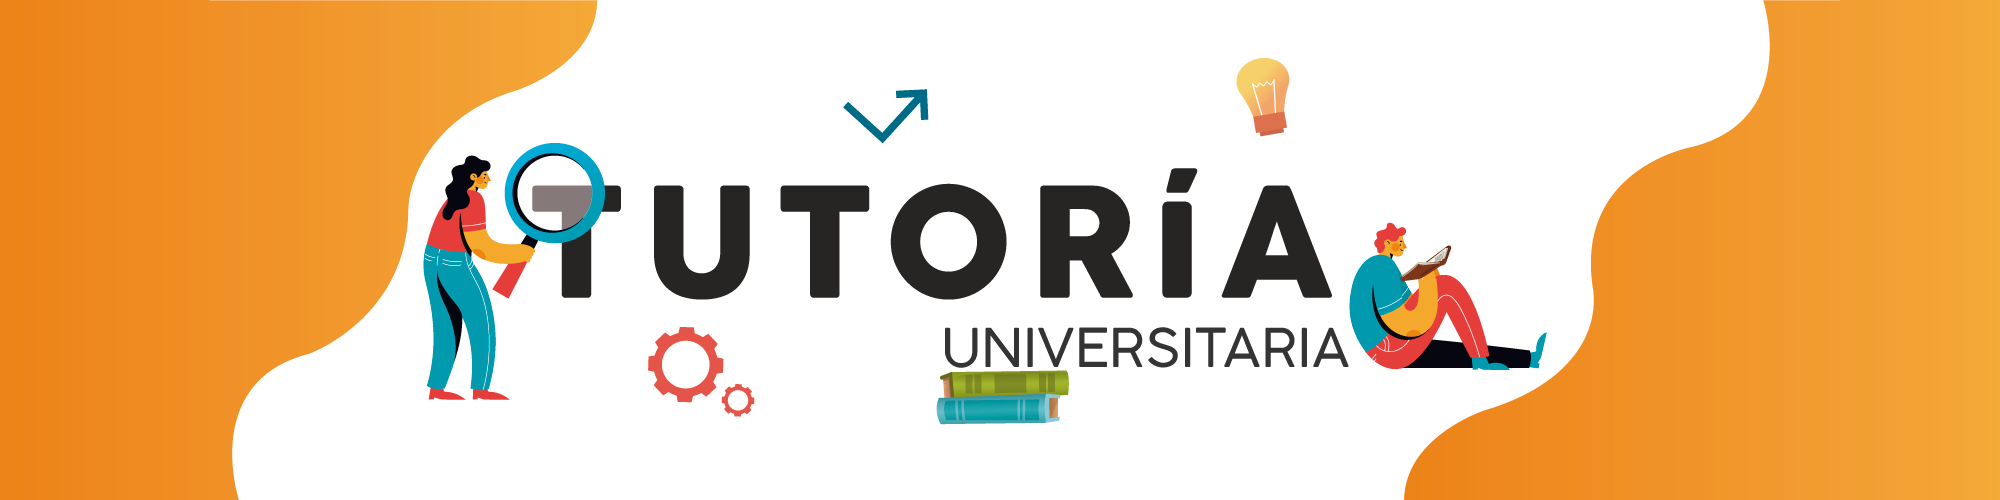 07_slider-tutoria-universitaria